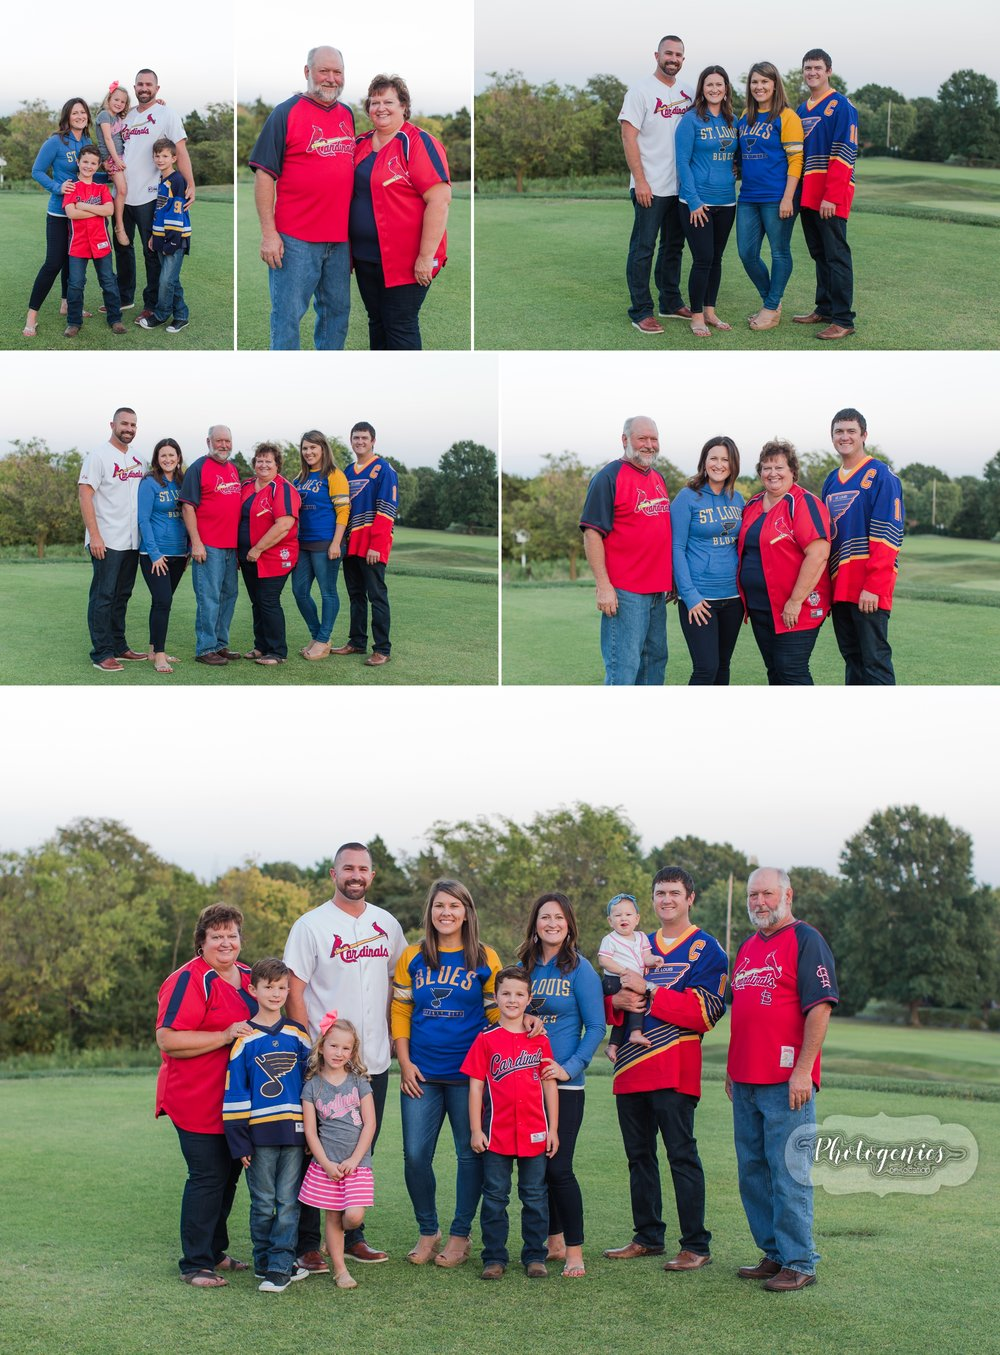 extended_family_sports_gear_st_louis_blues_st_louis_cardinals_baseball_jerserys_what_to_wear_coordinate_photography_photo_session